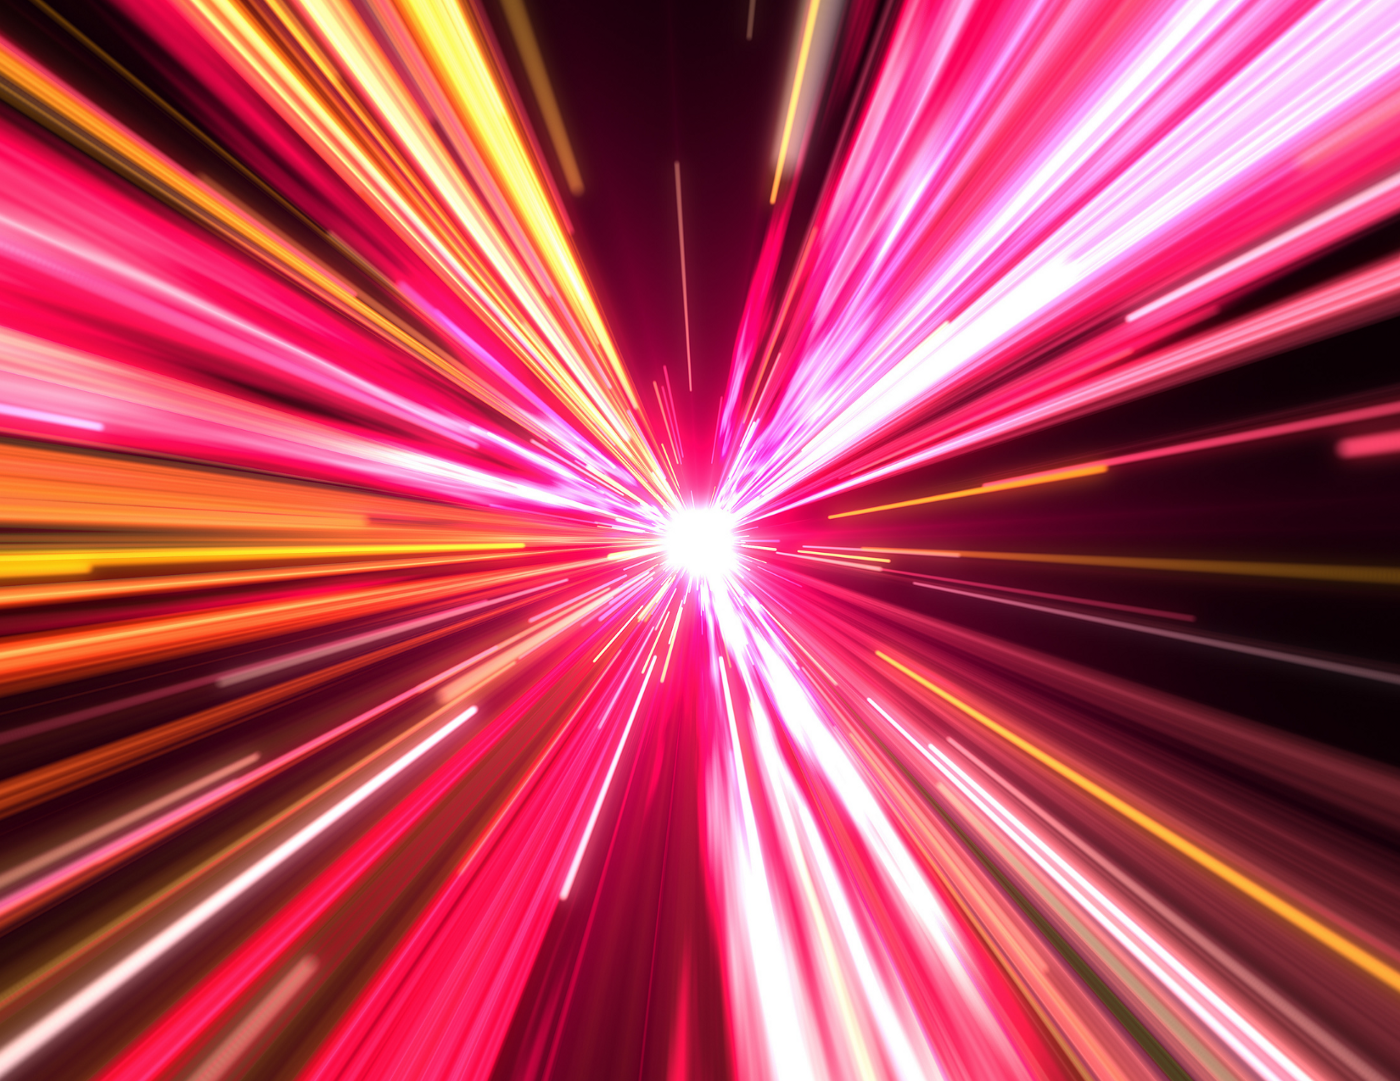 Image of pink and yellow light in motion, as if viewer moving through a tunnel. The image symbolizes the movement of energy.